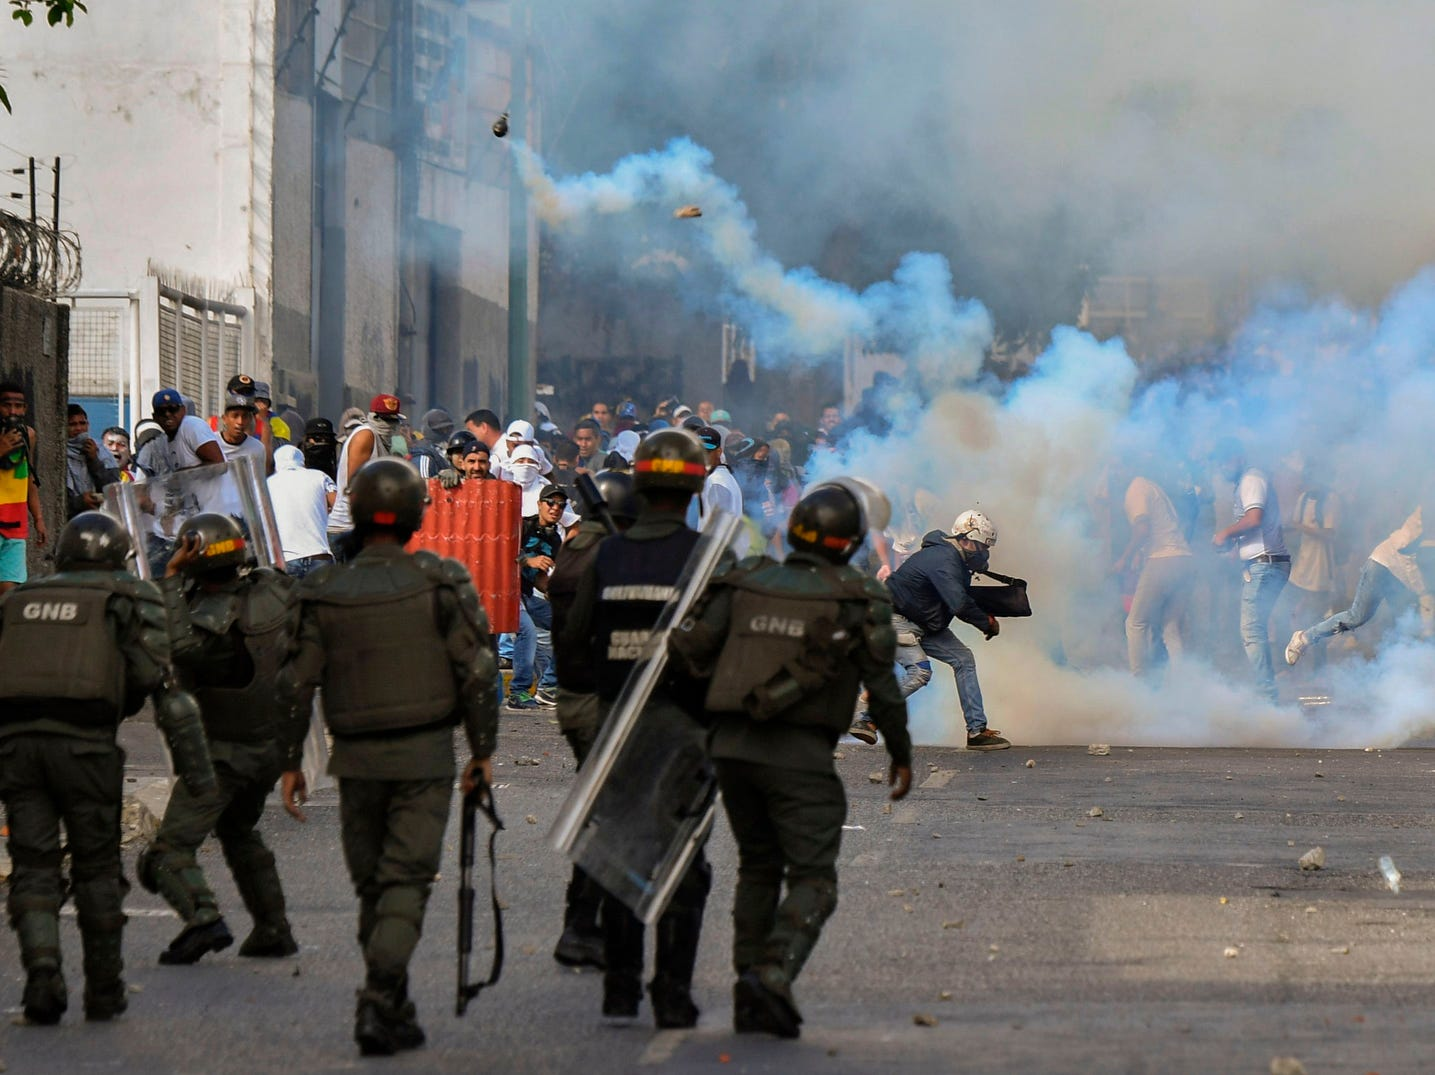 Opposition demonstrators clash with security forces, Wednesday, during a protest against the government of President Nicolas Maduro on the anniversary of the 1958 uprising that overthrew the military dictatorship, in Caracas, Venezuela.